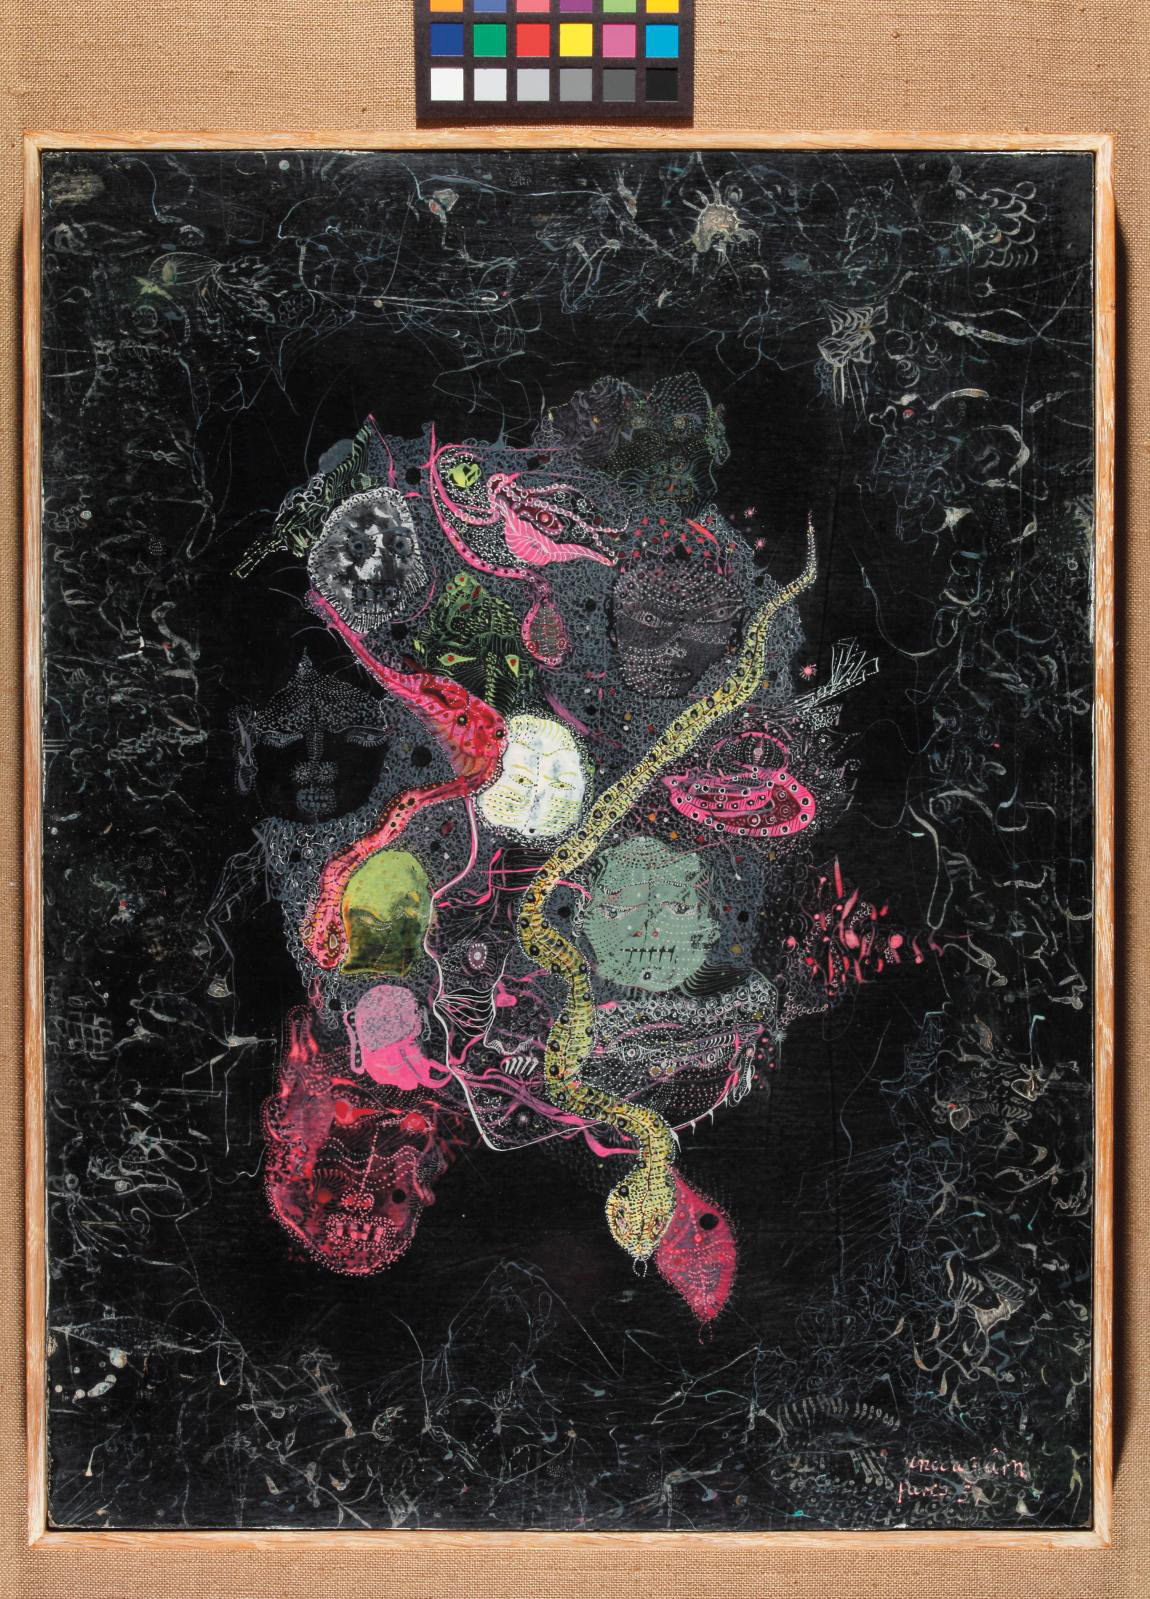 Unica Zürn (1916-1970), Untitled, Paris, 1957, oil on paper mounted on wood, 40.9 x 30.8 cm (16.10 x 12.12 in). Courtesy Ubu Gallery, New York